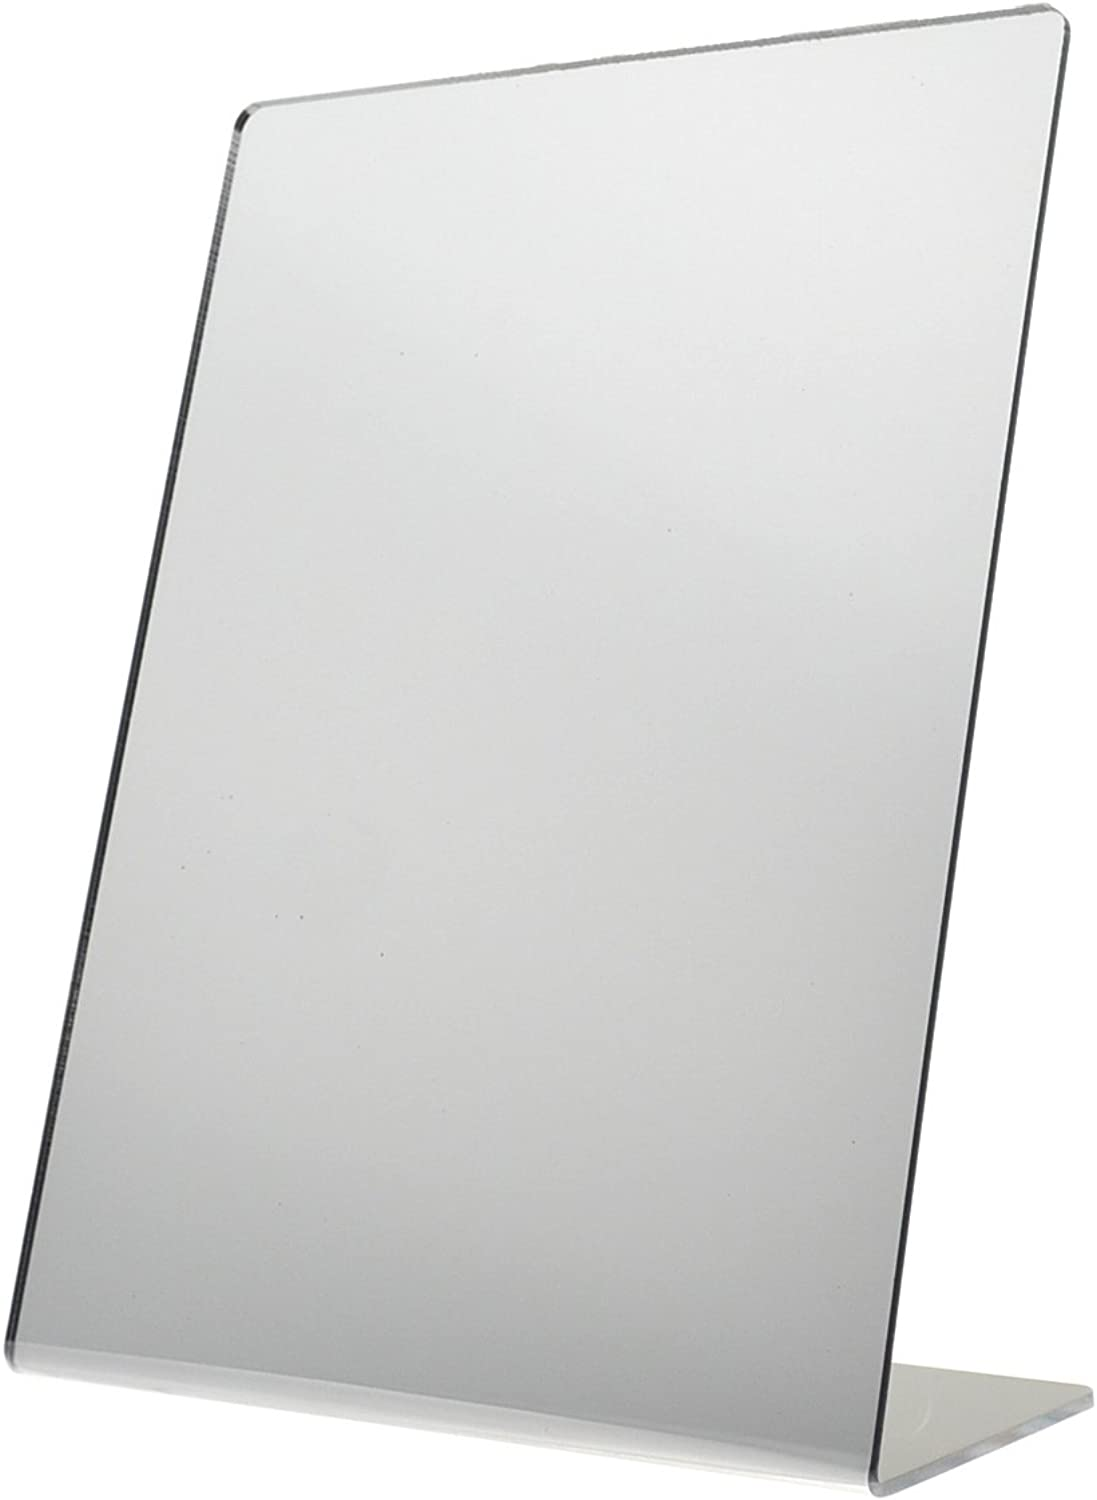 Marketing Holders Free Standing Mirror Slant Back Self-Portrait Counter Mirror - 8 1 2 x 11 inches Lot of 5